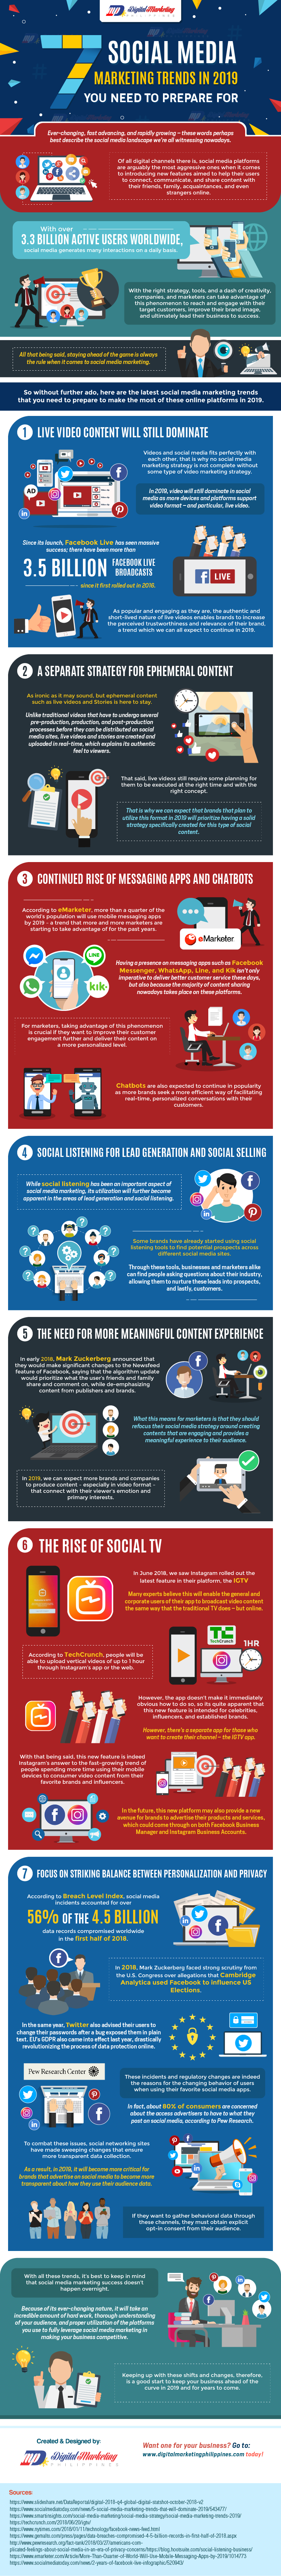 7 Social Media Marketing Trends in 2019 You Need to Prepare For [Infographic]